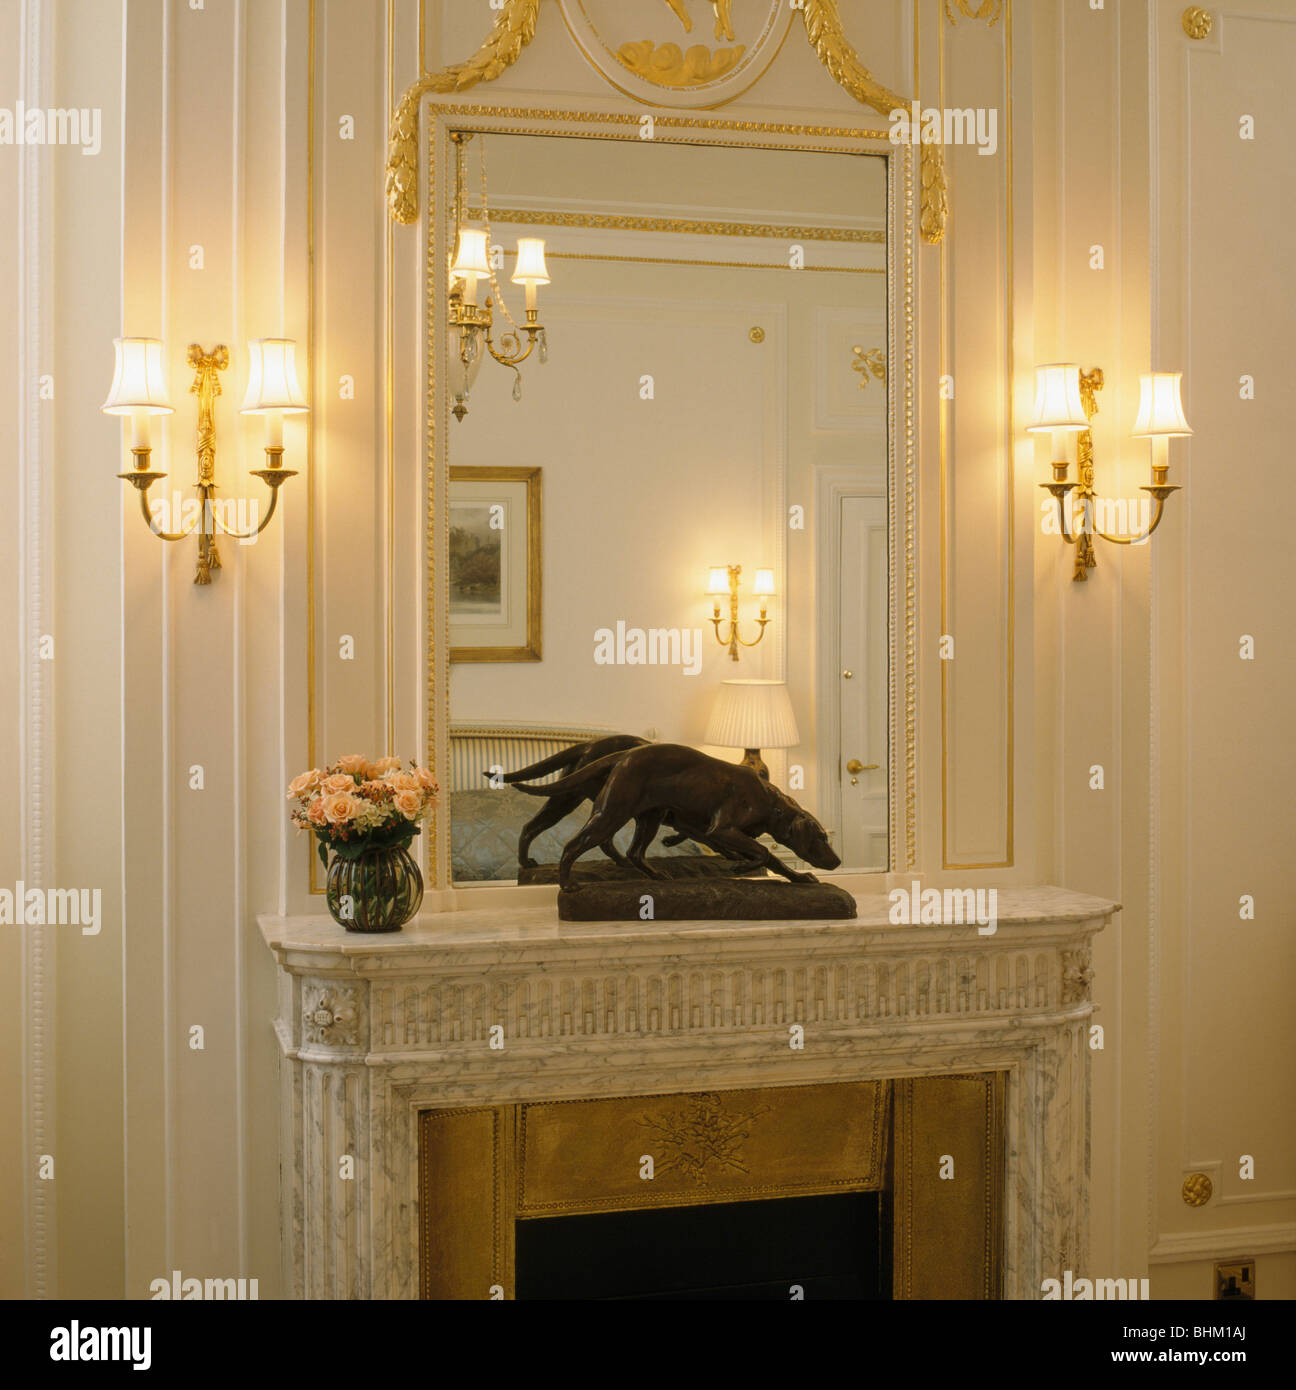 Lighted wall-lights on either side of over-mantel mirror above ...